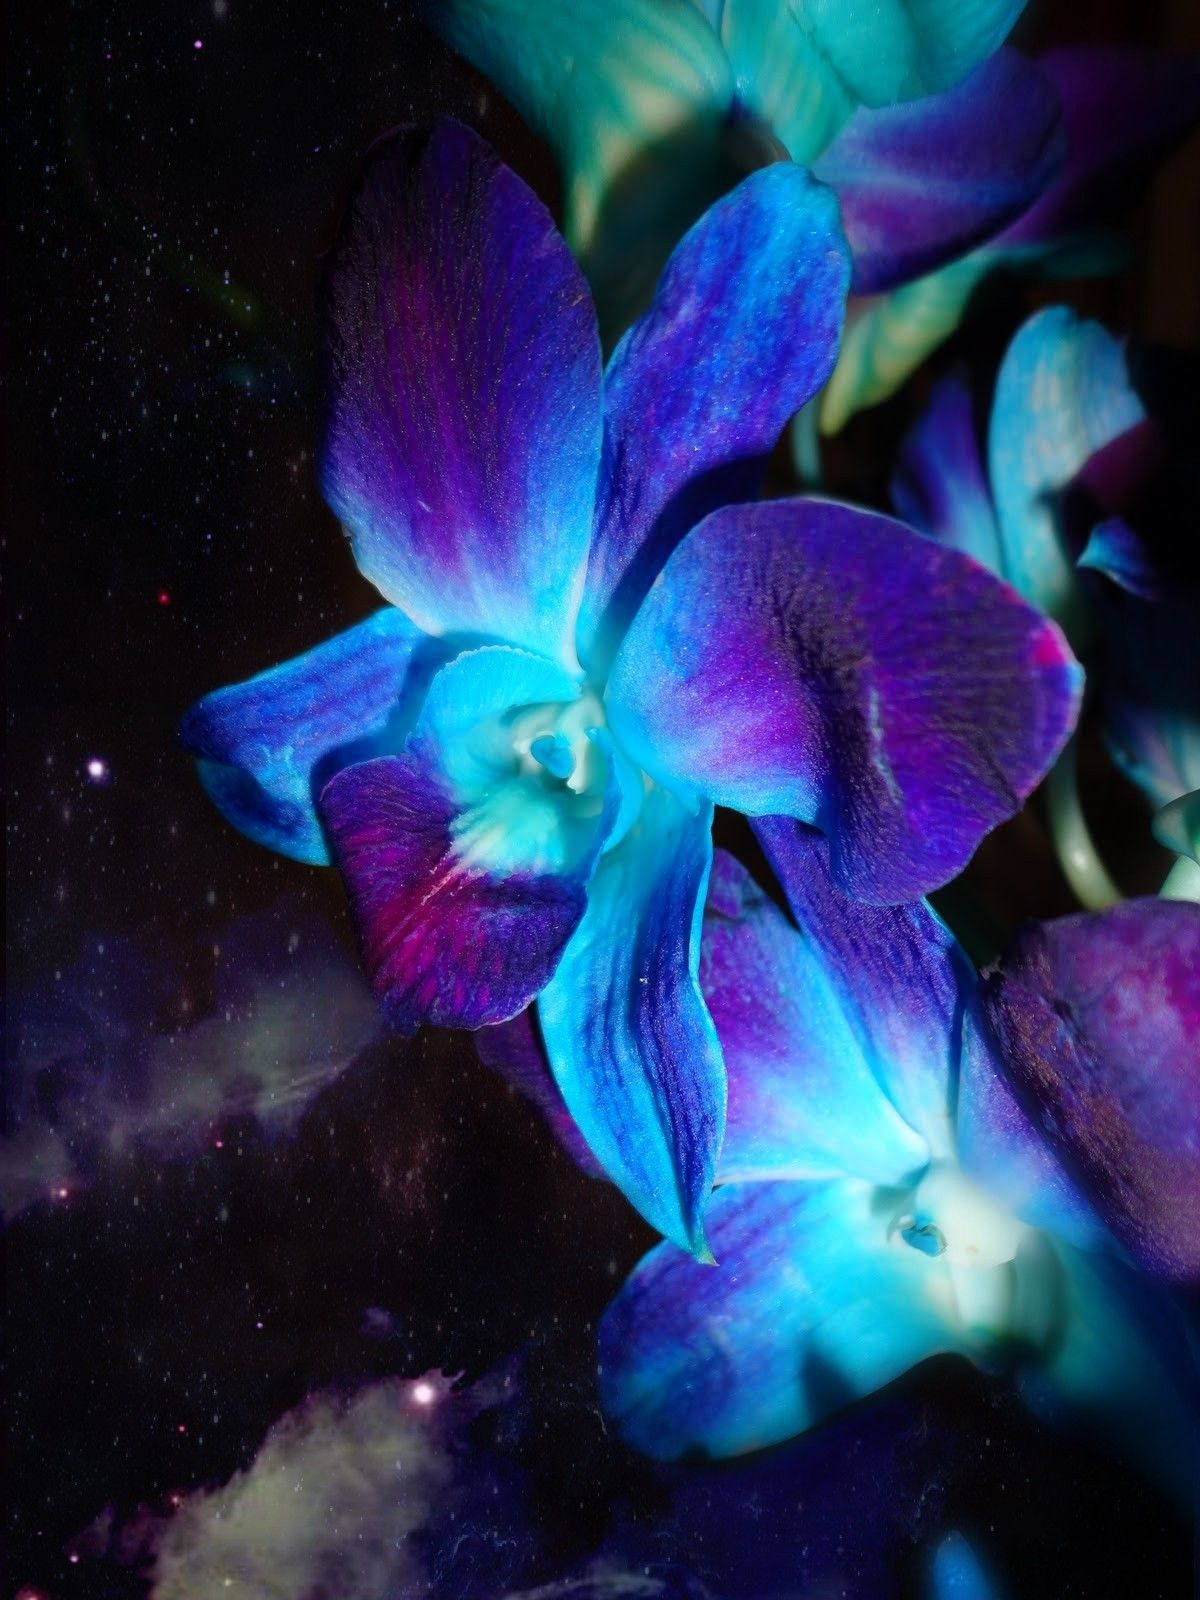 Blue and purple orchid wallpaper wallpapers pinterest blue and purple orchid wallpaper izmirmasajfo